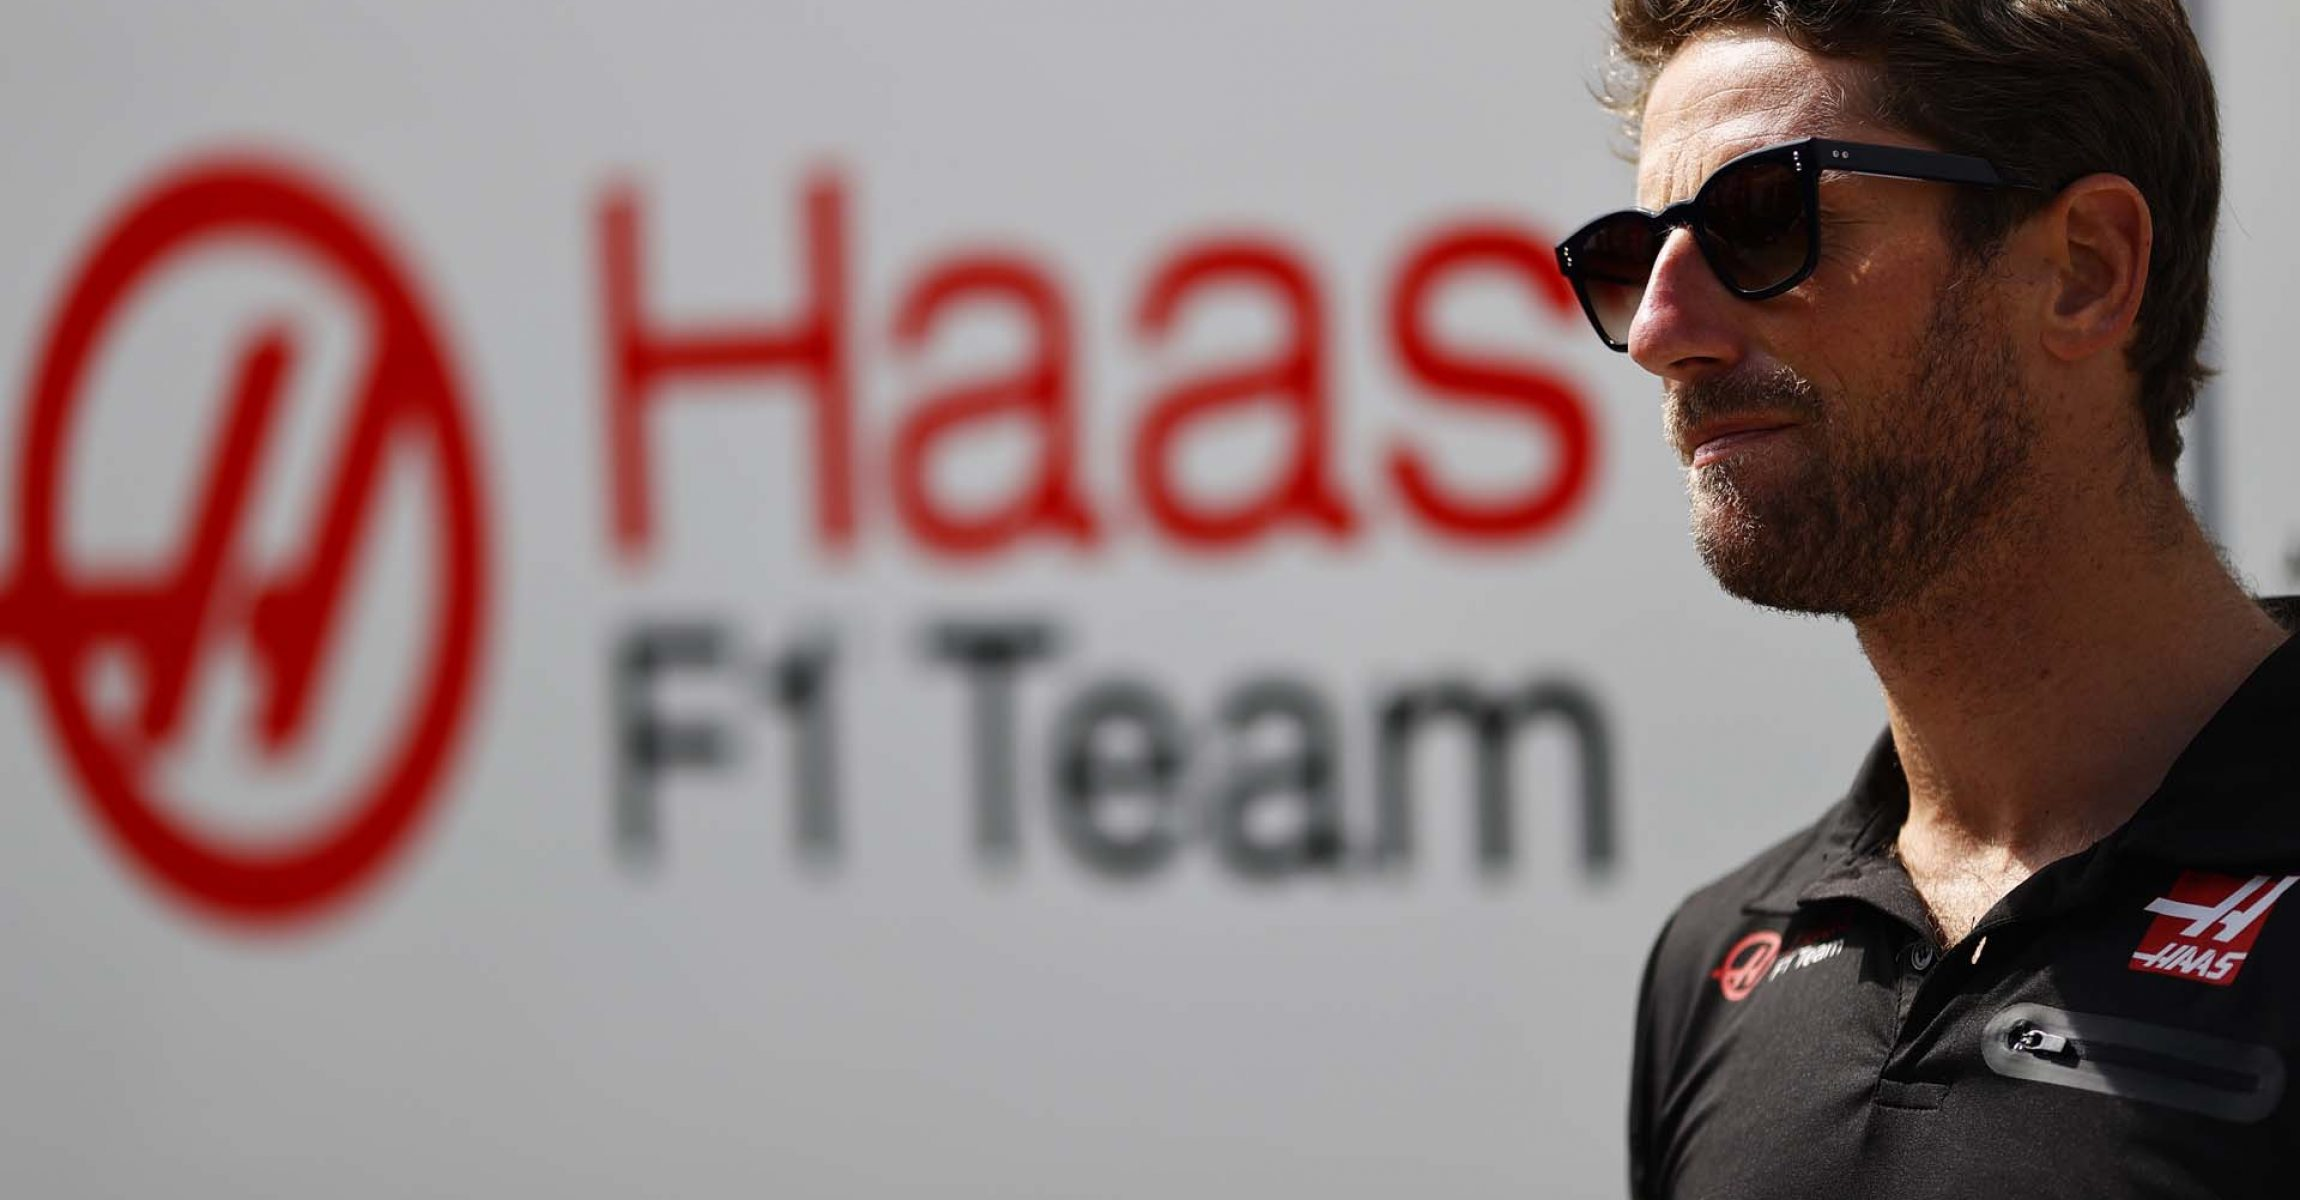 MUGELLO CIRCUIT, ITALY - SEPTEMBER 10: Romain Grosjean, Haas F1 during the Tuscany GP at Mugello Circuit on Thursday September 10, 2020, Italy. (Photo by Andy Hone / LAT Images)